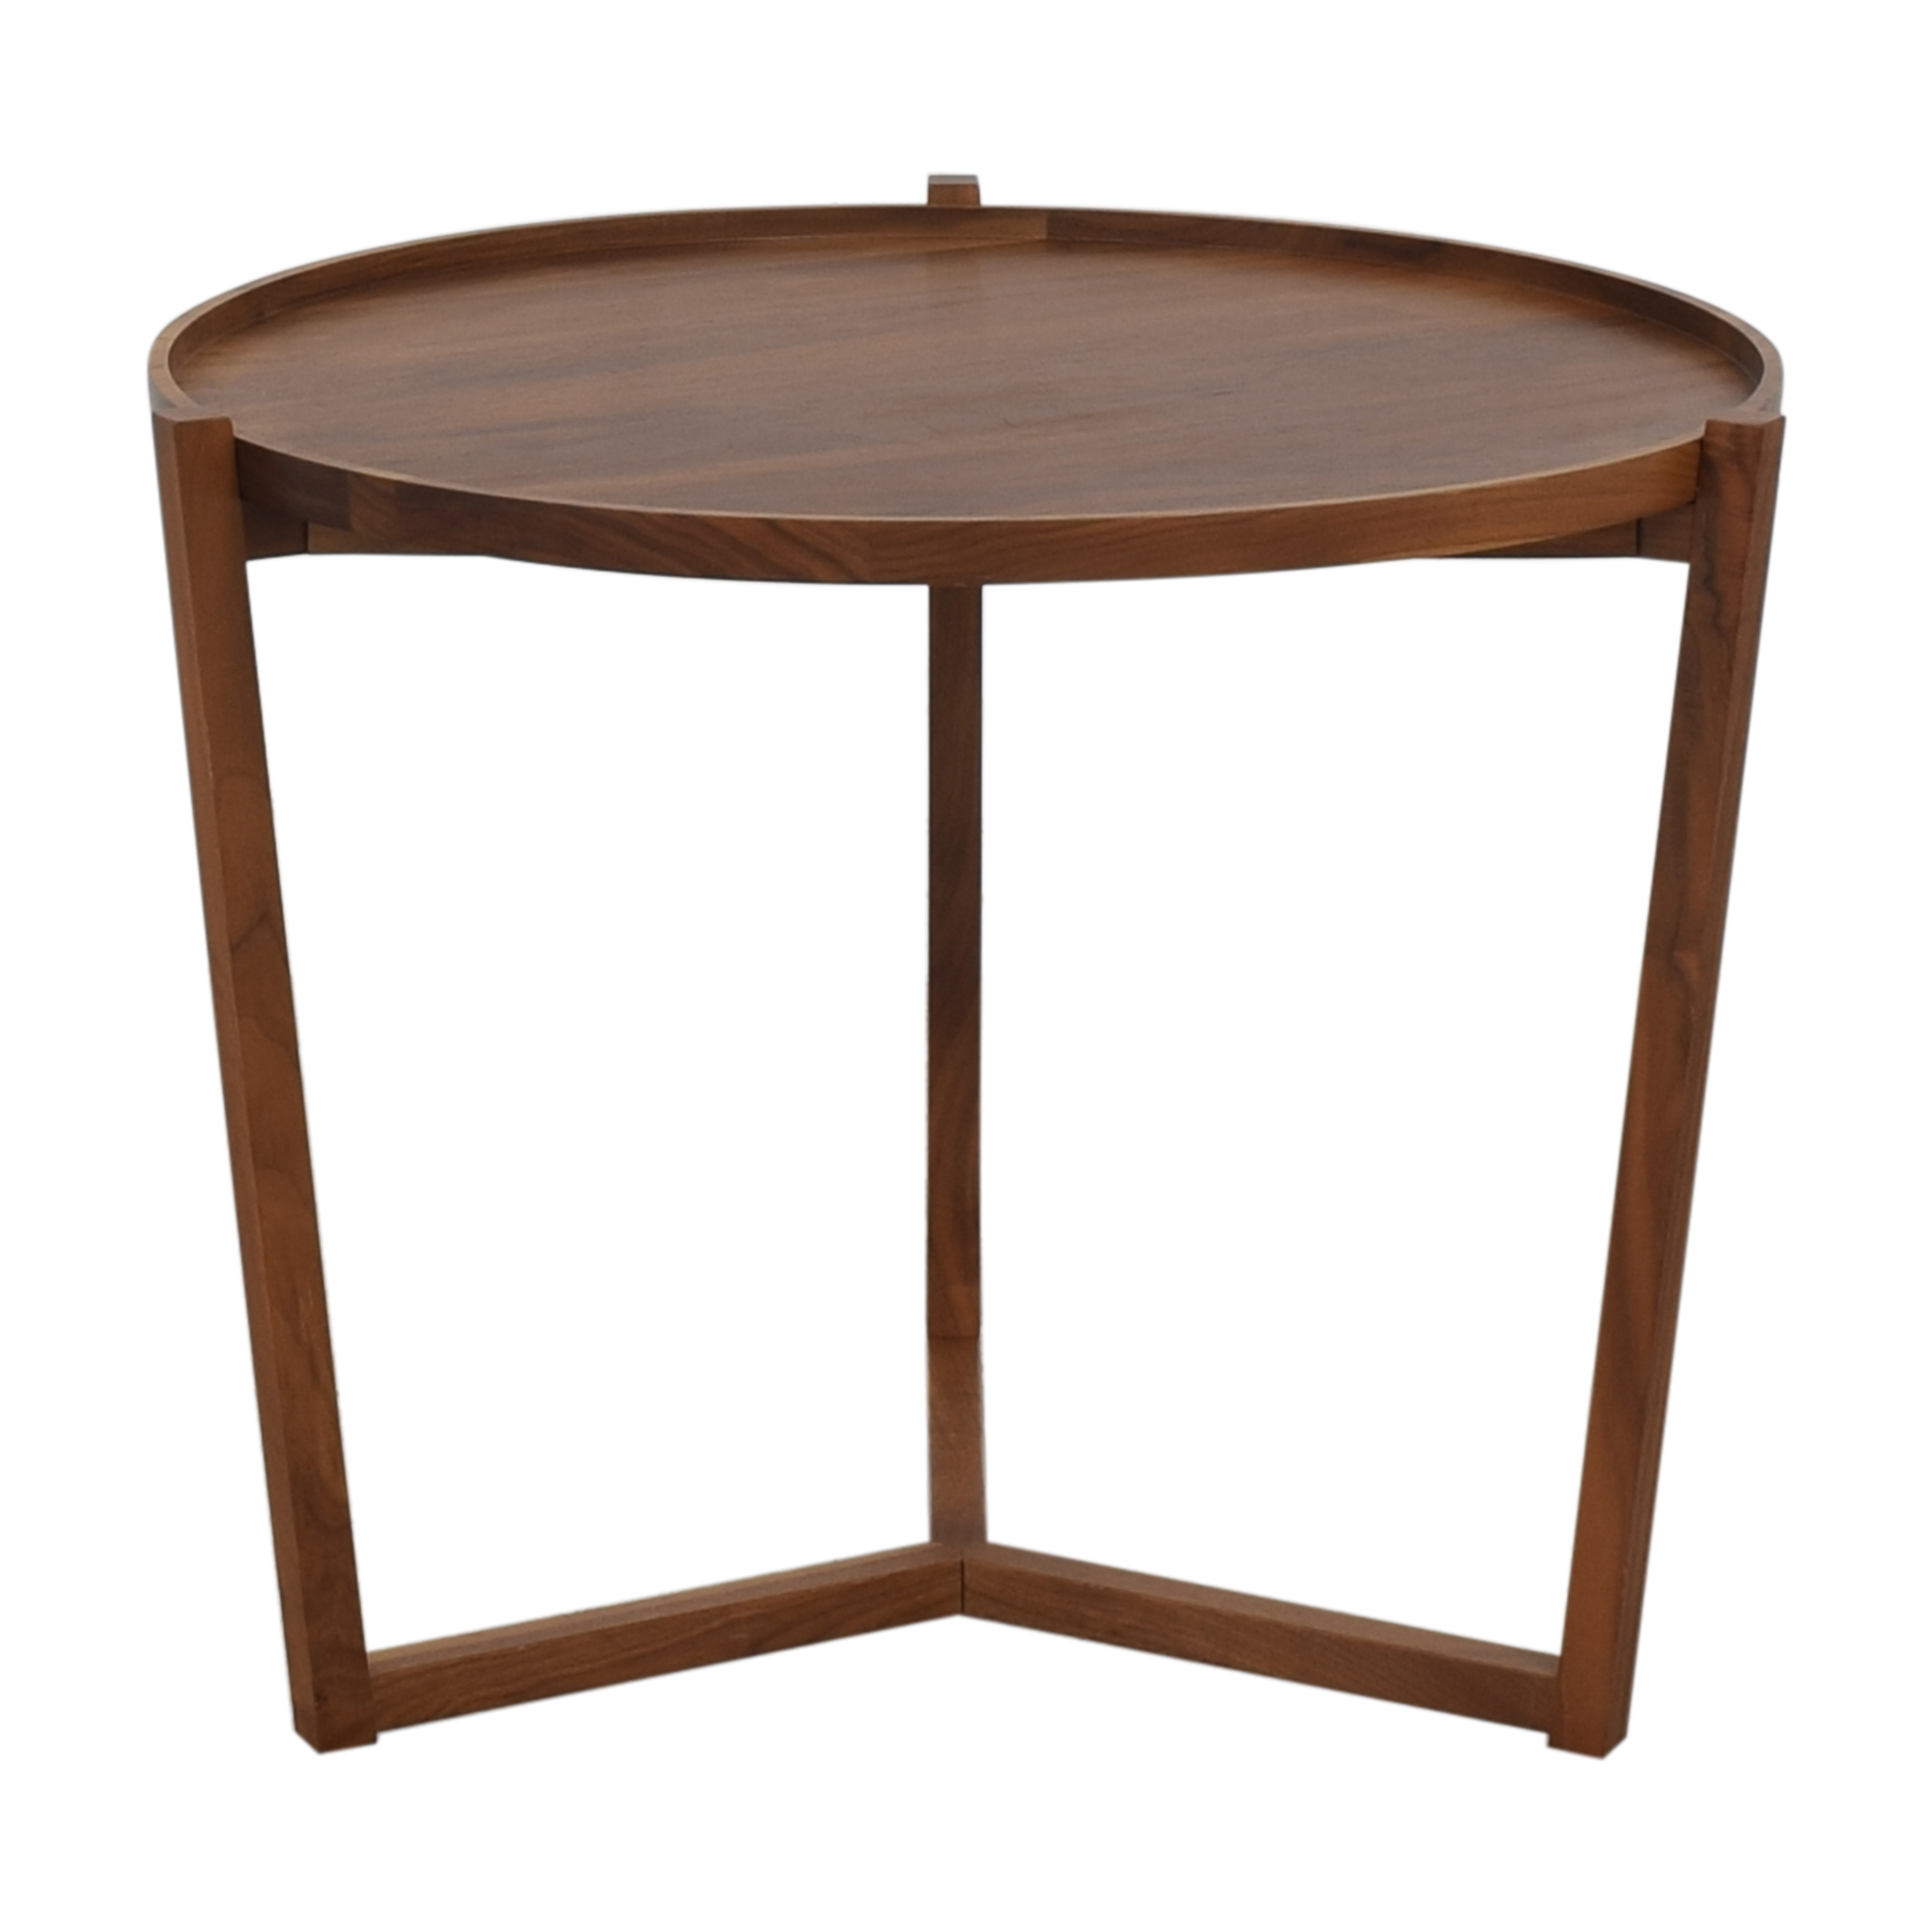 Room & Board Room & Board Jax Round End Table coupon